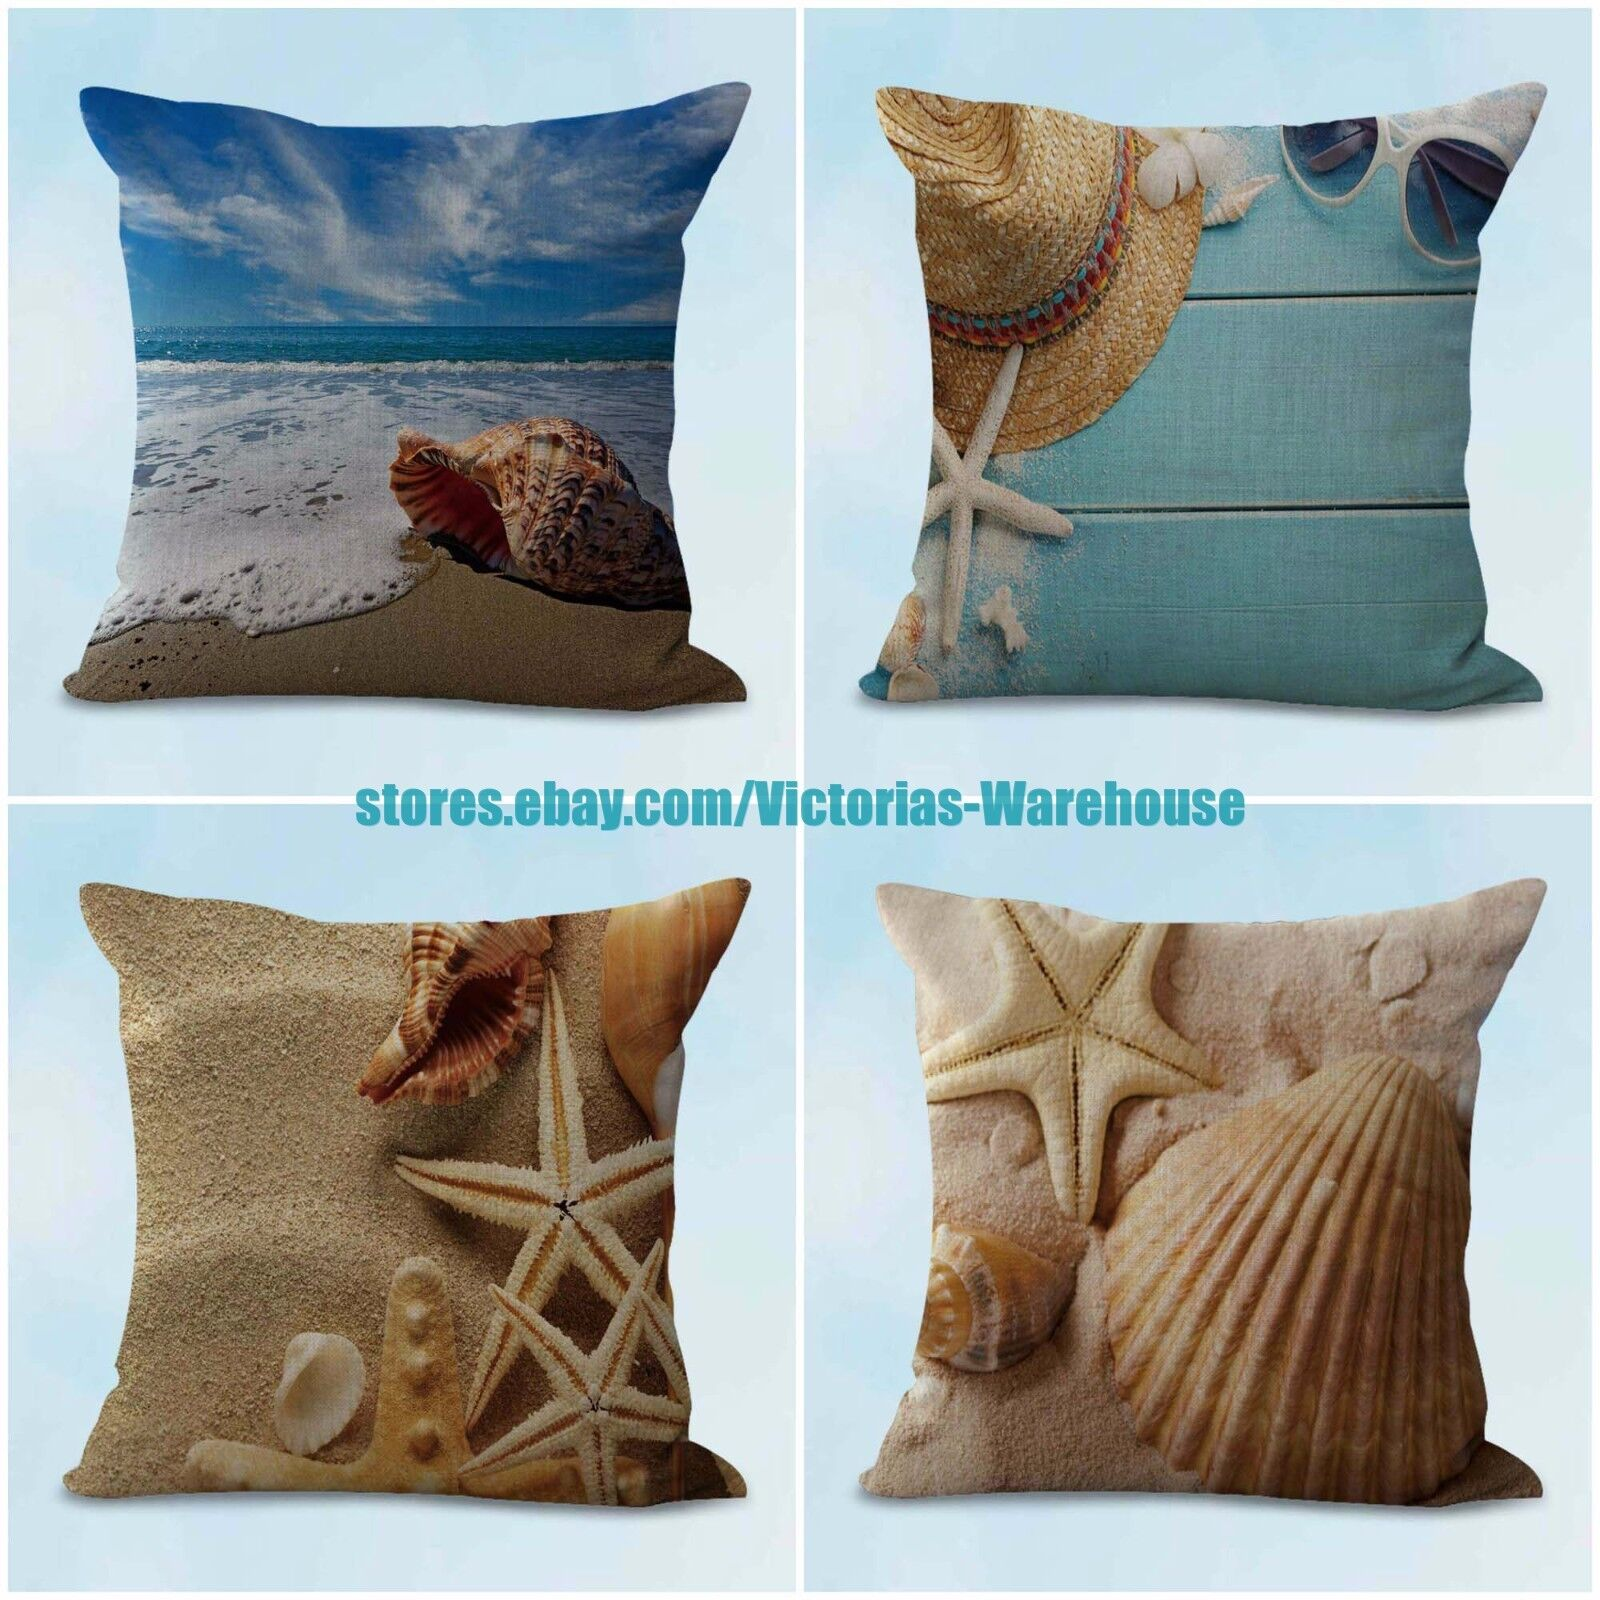 4pcs decorative throw pillow cushion covers natural scenery